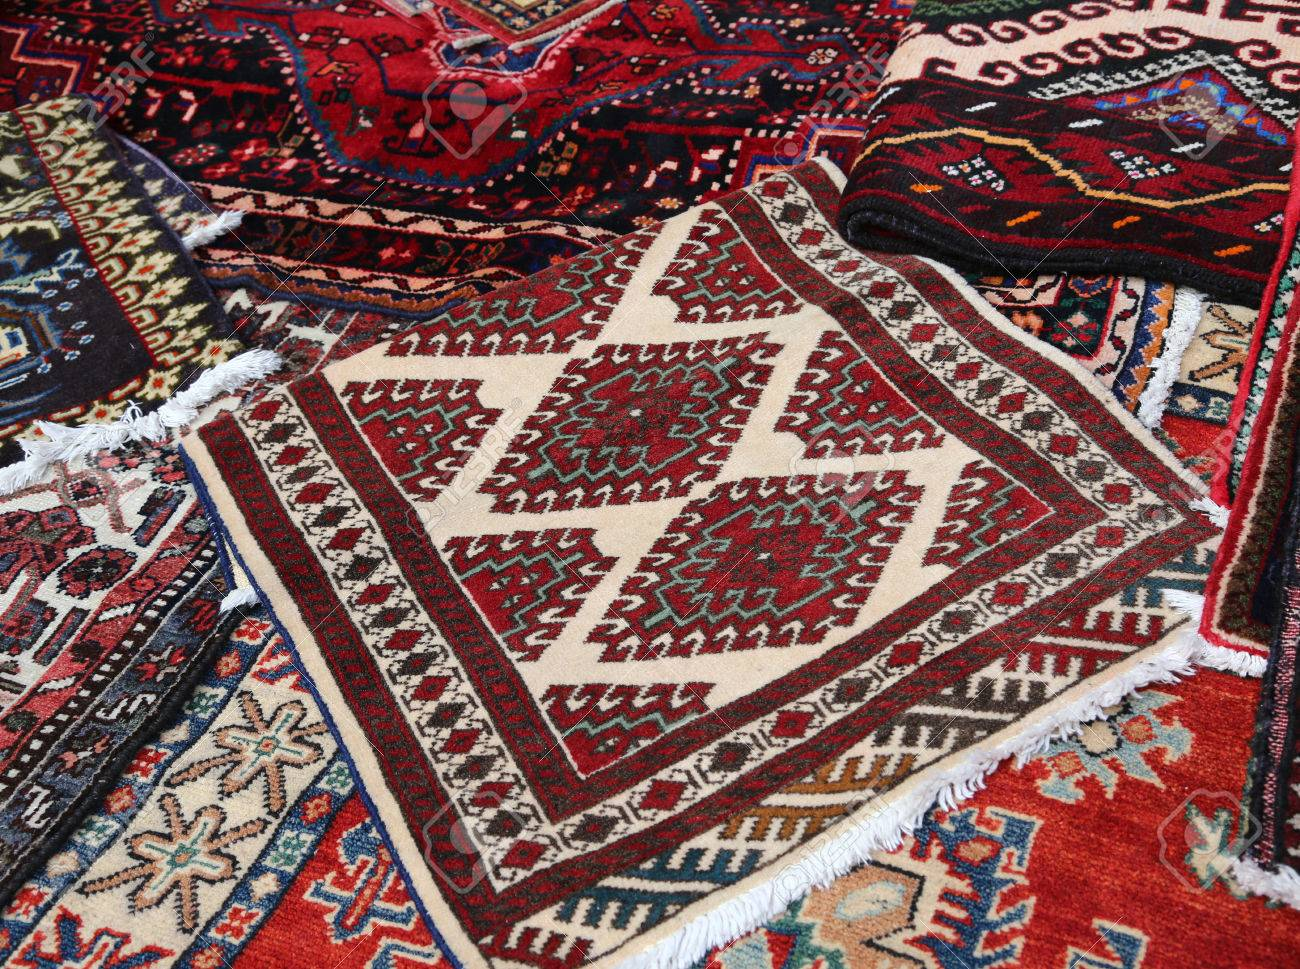 Oriental Rugs Handmade Wool For Sale In The Shop Of Fine Rugs Stock Photo    35216916